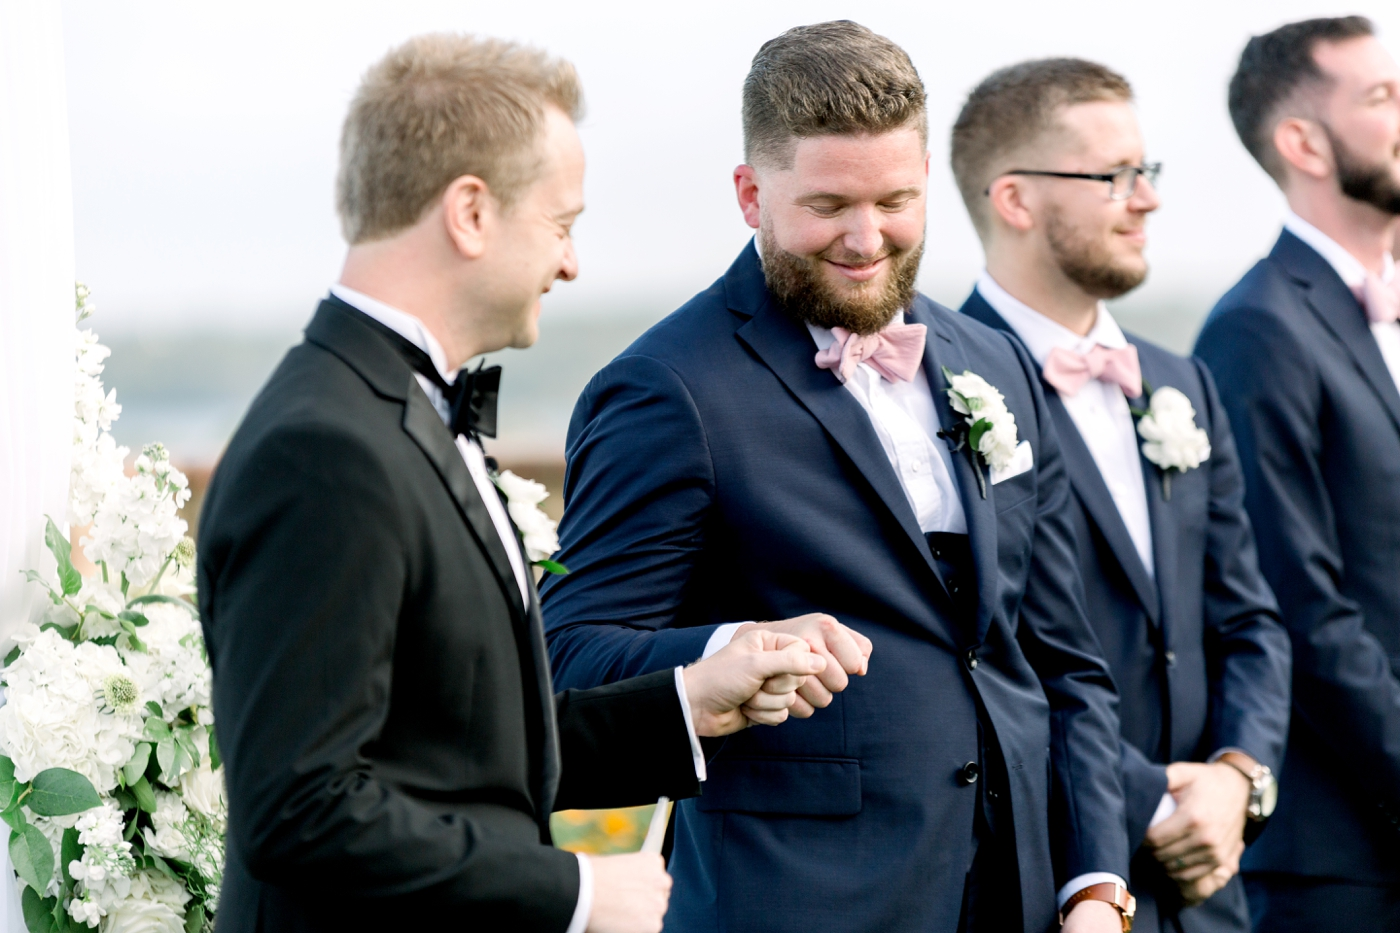 groom fist bump as bride walks down aisle